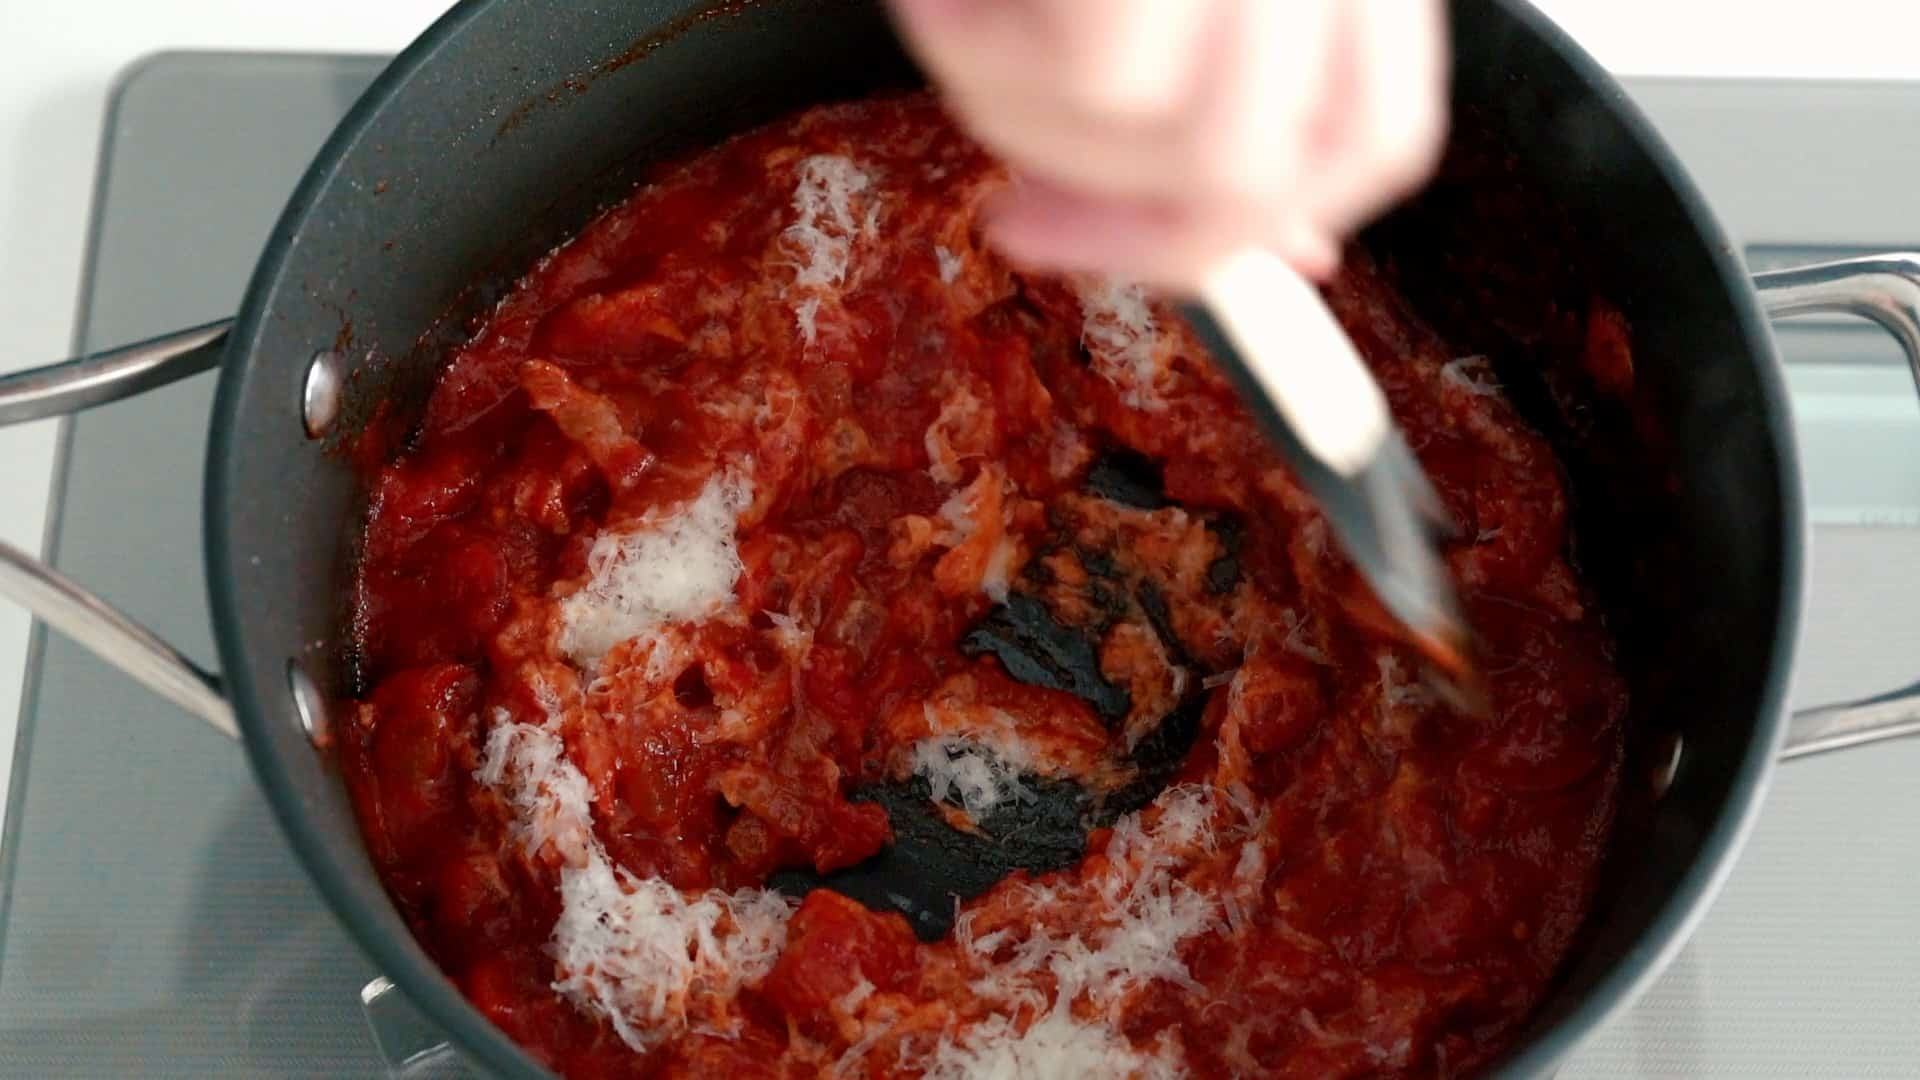 Stirring grated Pecorino Romano cheese into Amatriciana Sauce.